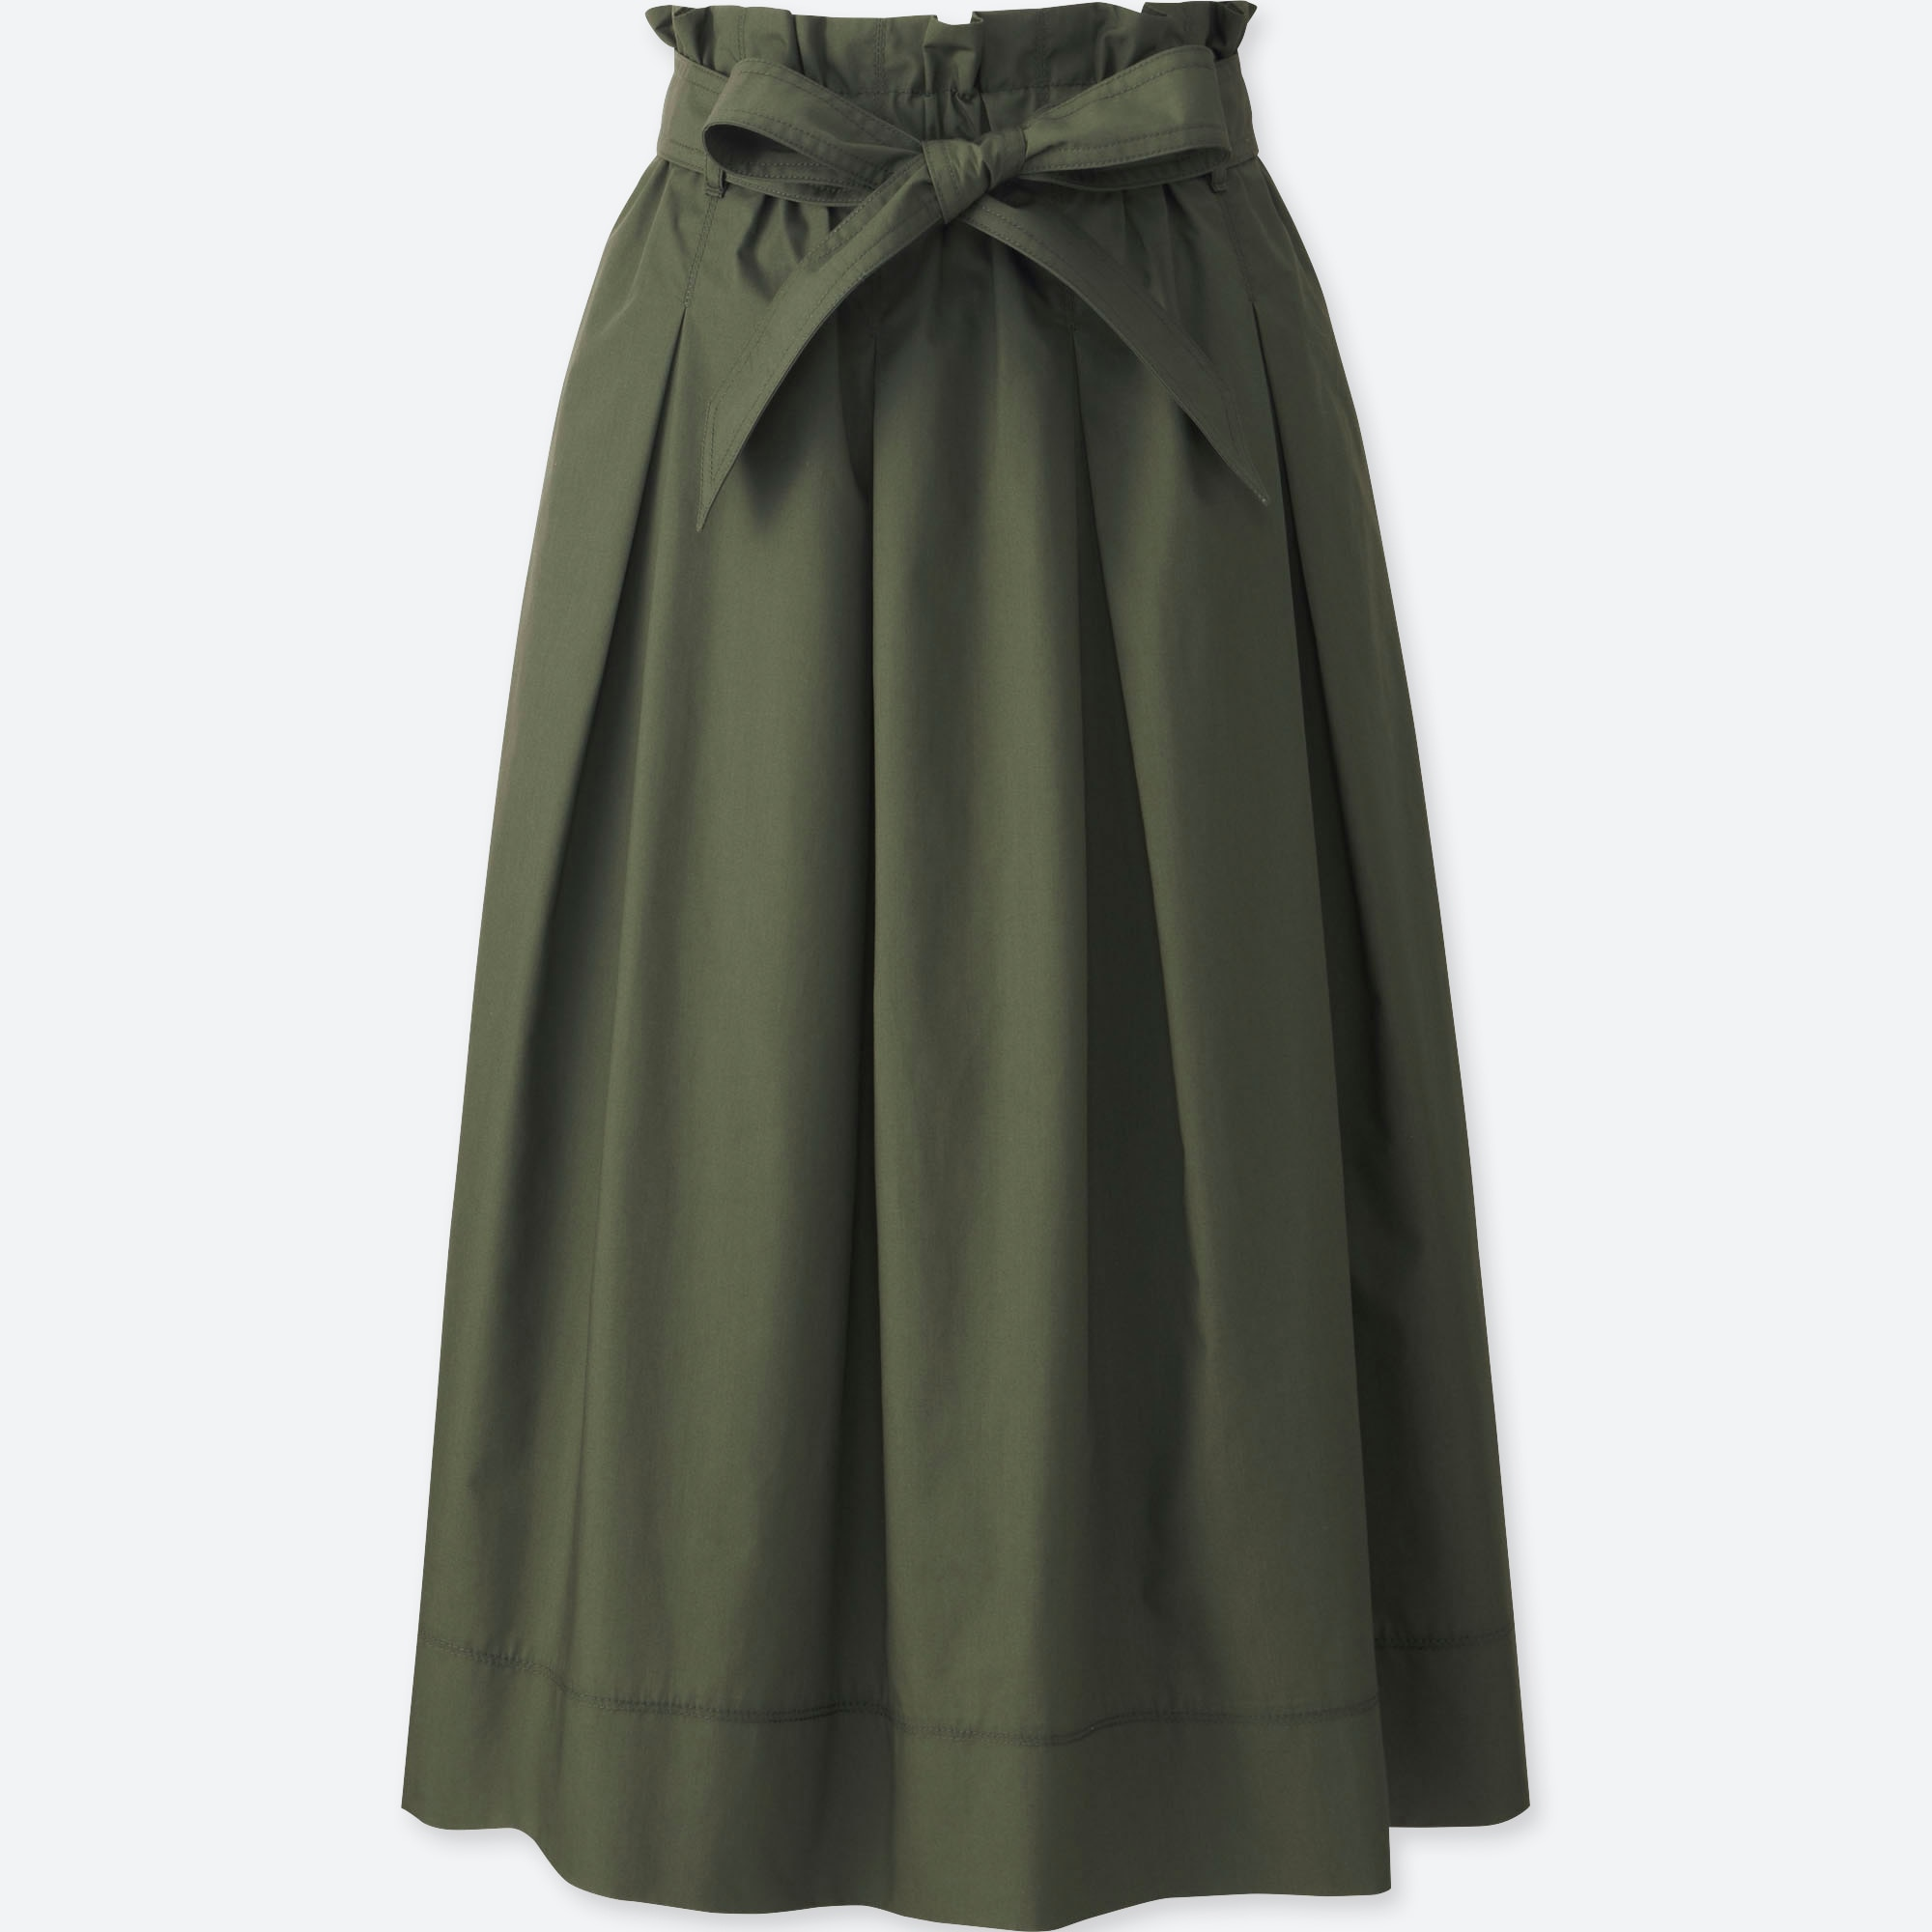 wholesale online variety styles of 2019 authorized site WOMEN HIGH WAIST BELTED FLARE MIDI SKIRT